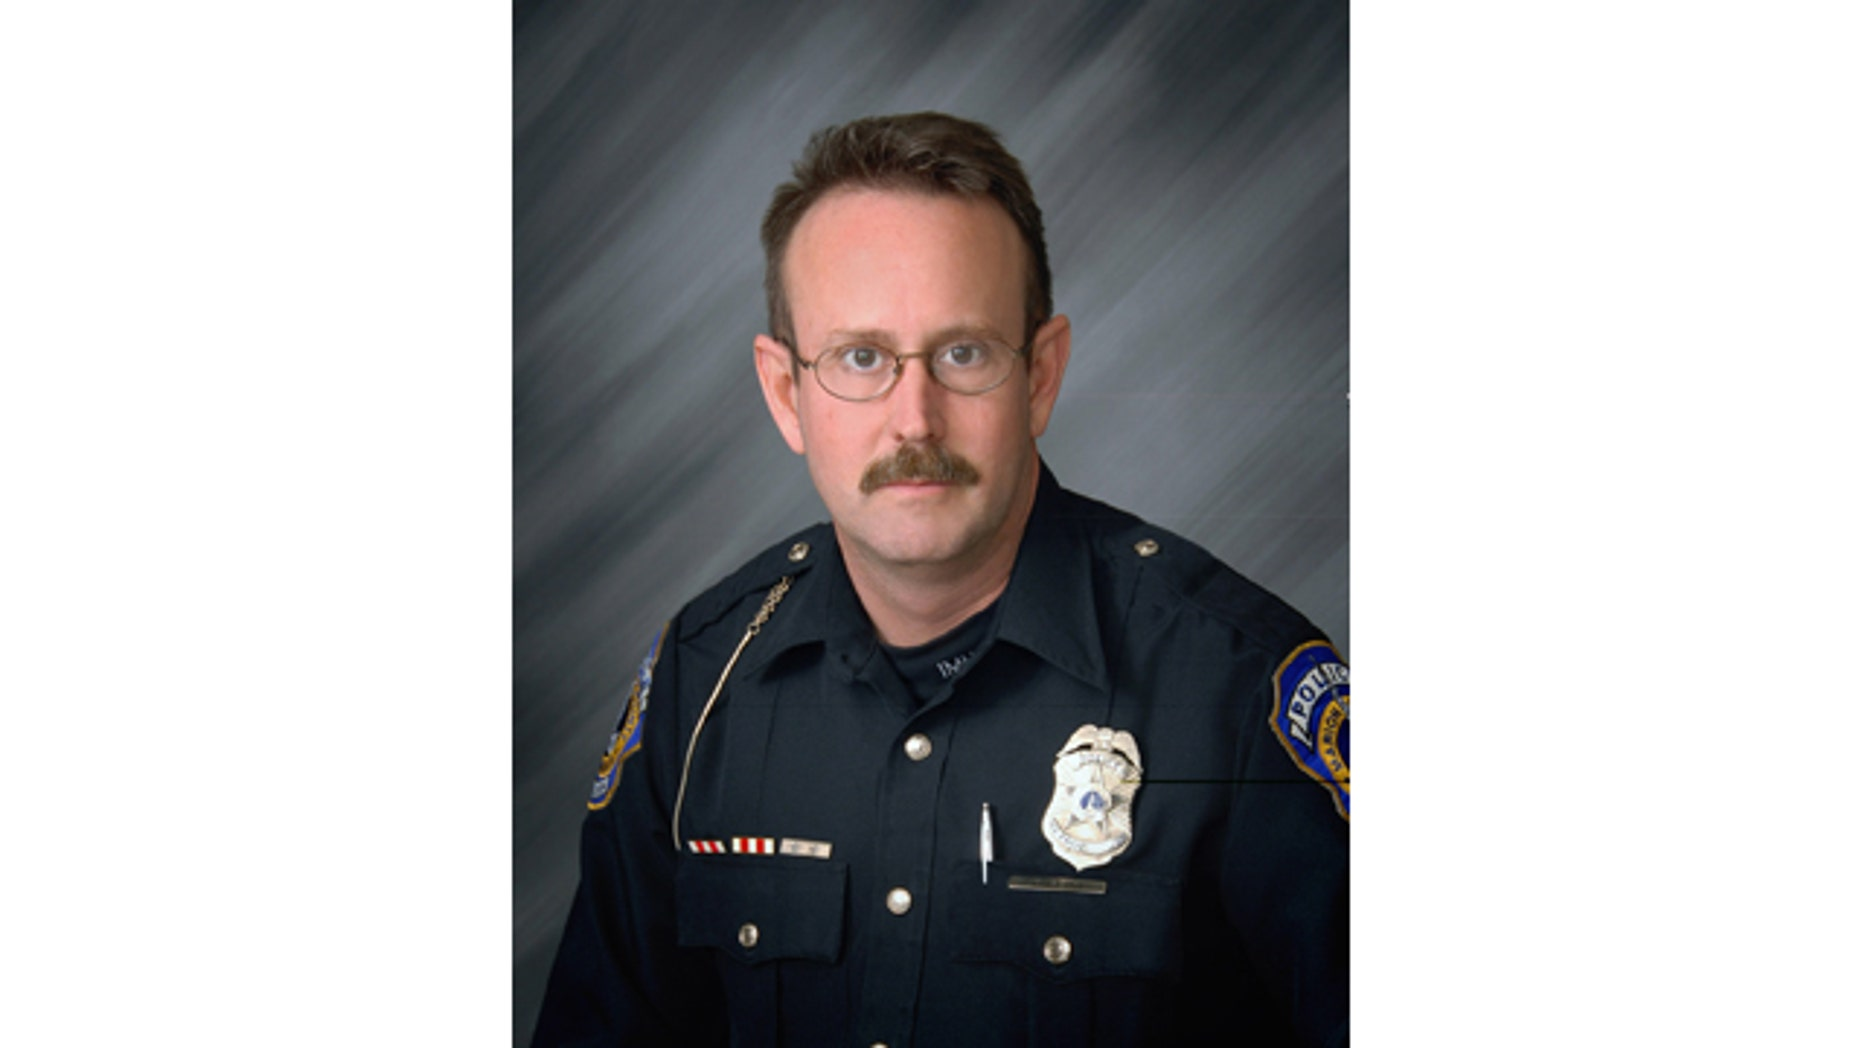 This undated photo released by the Indianapolis Metropolitan Police Department shows veteran officer Perry Renn, 51, who was shot and killed after he and another patrolman exchanged gunfire with a suspect in an alley Saturday night, July 5, 2014, in Indianapolis. (AP Photo/Indianapolis Metropolitan Police Dept.)